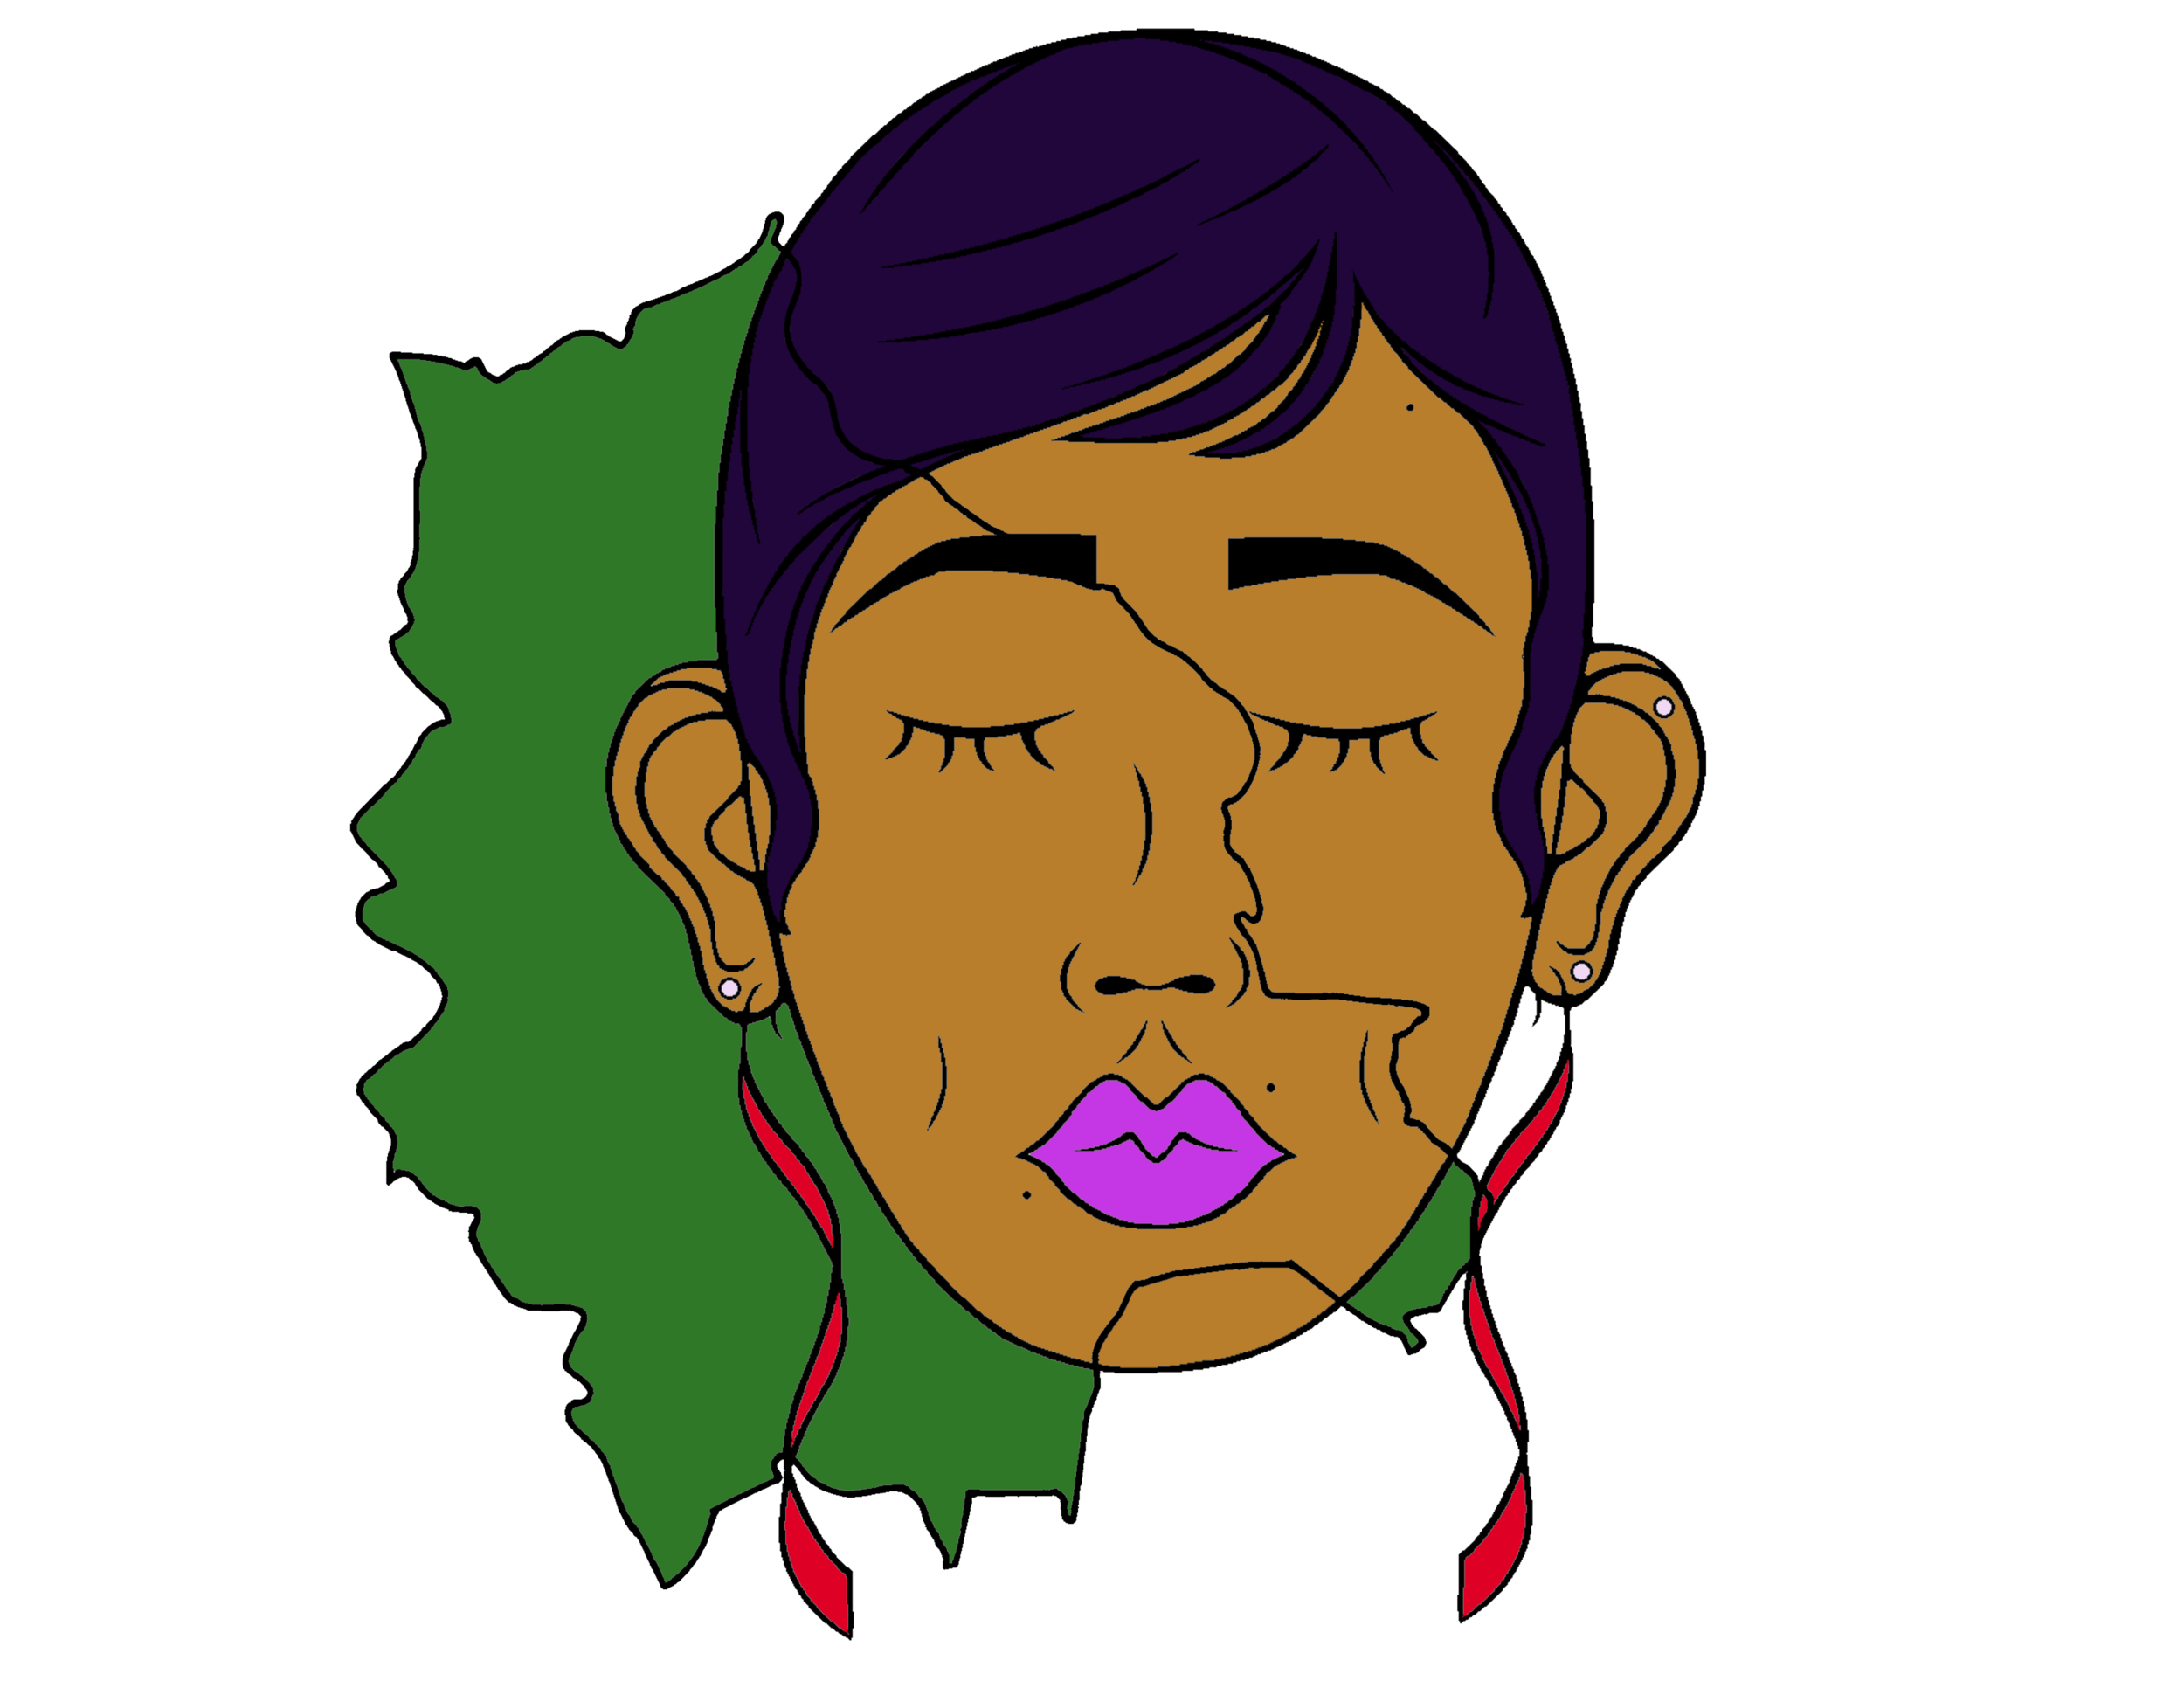 Miss Bolivia. Her country, along with various others, is a part of the African Diaspora. The strong features in her face represent her African traits. You'll also notice there's a free hand sketch of Bolivia blended in with her face. This shows she is a part of her homeland, and her homeland a part of her. -